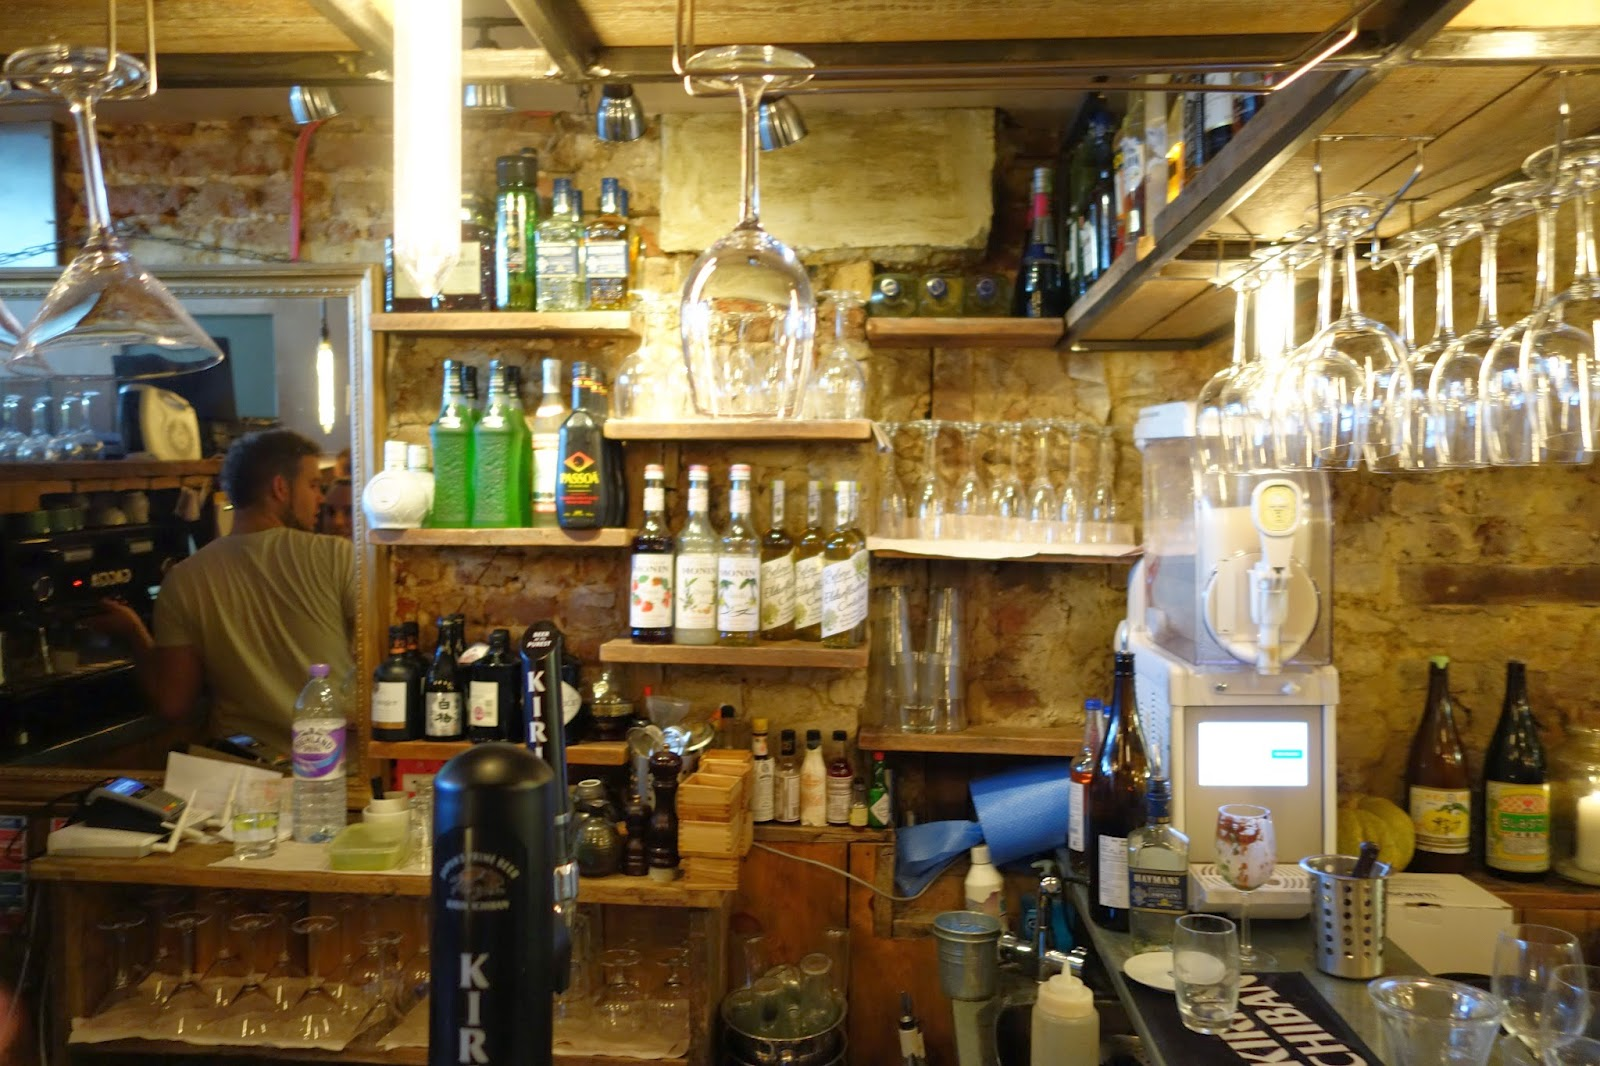 behind the bar; bottles and glasses